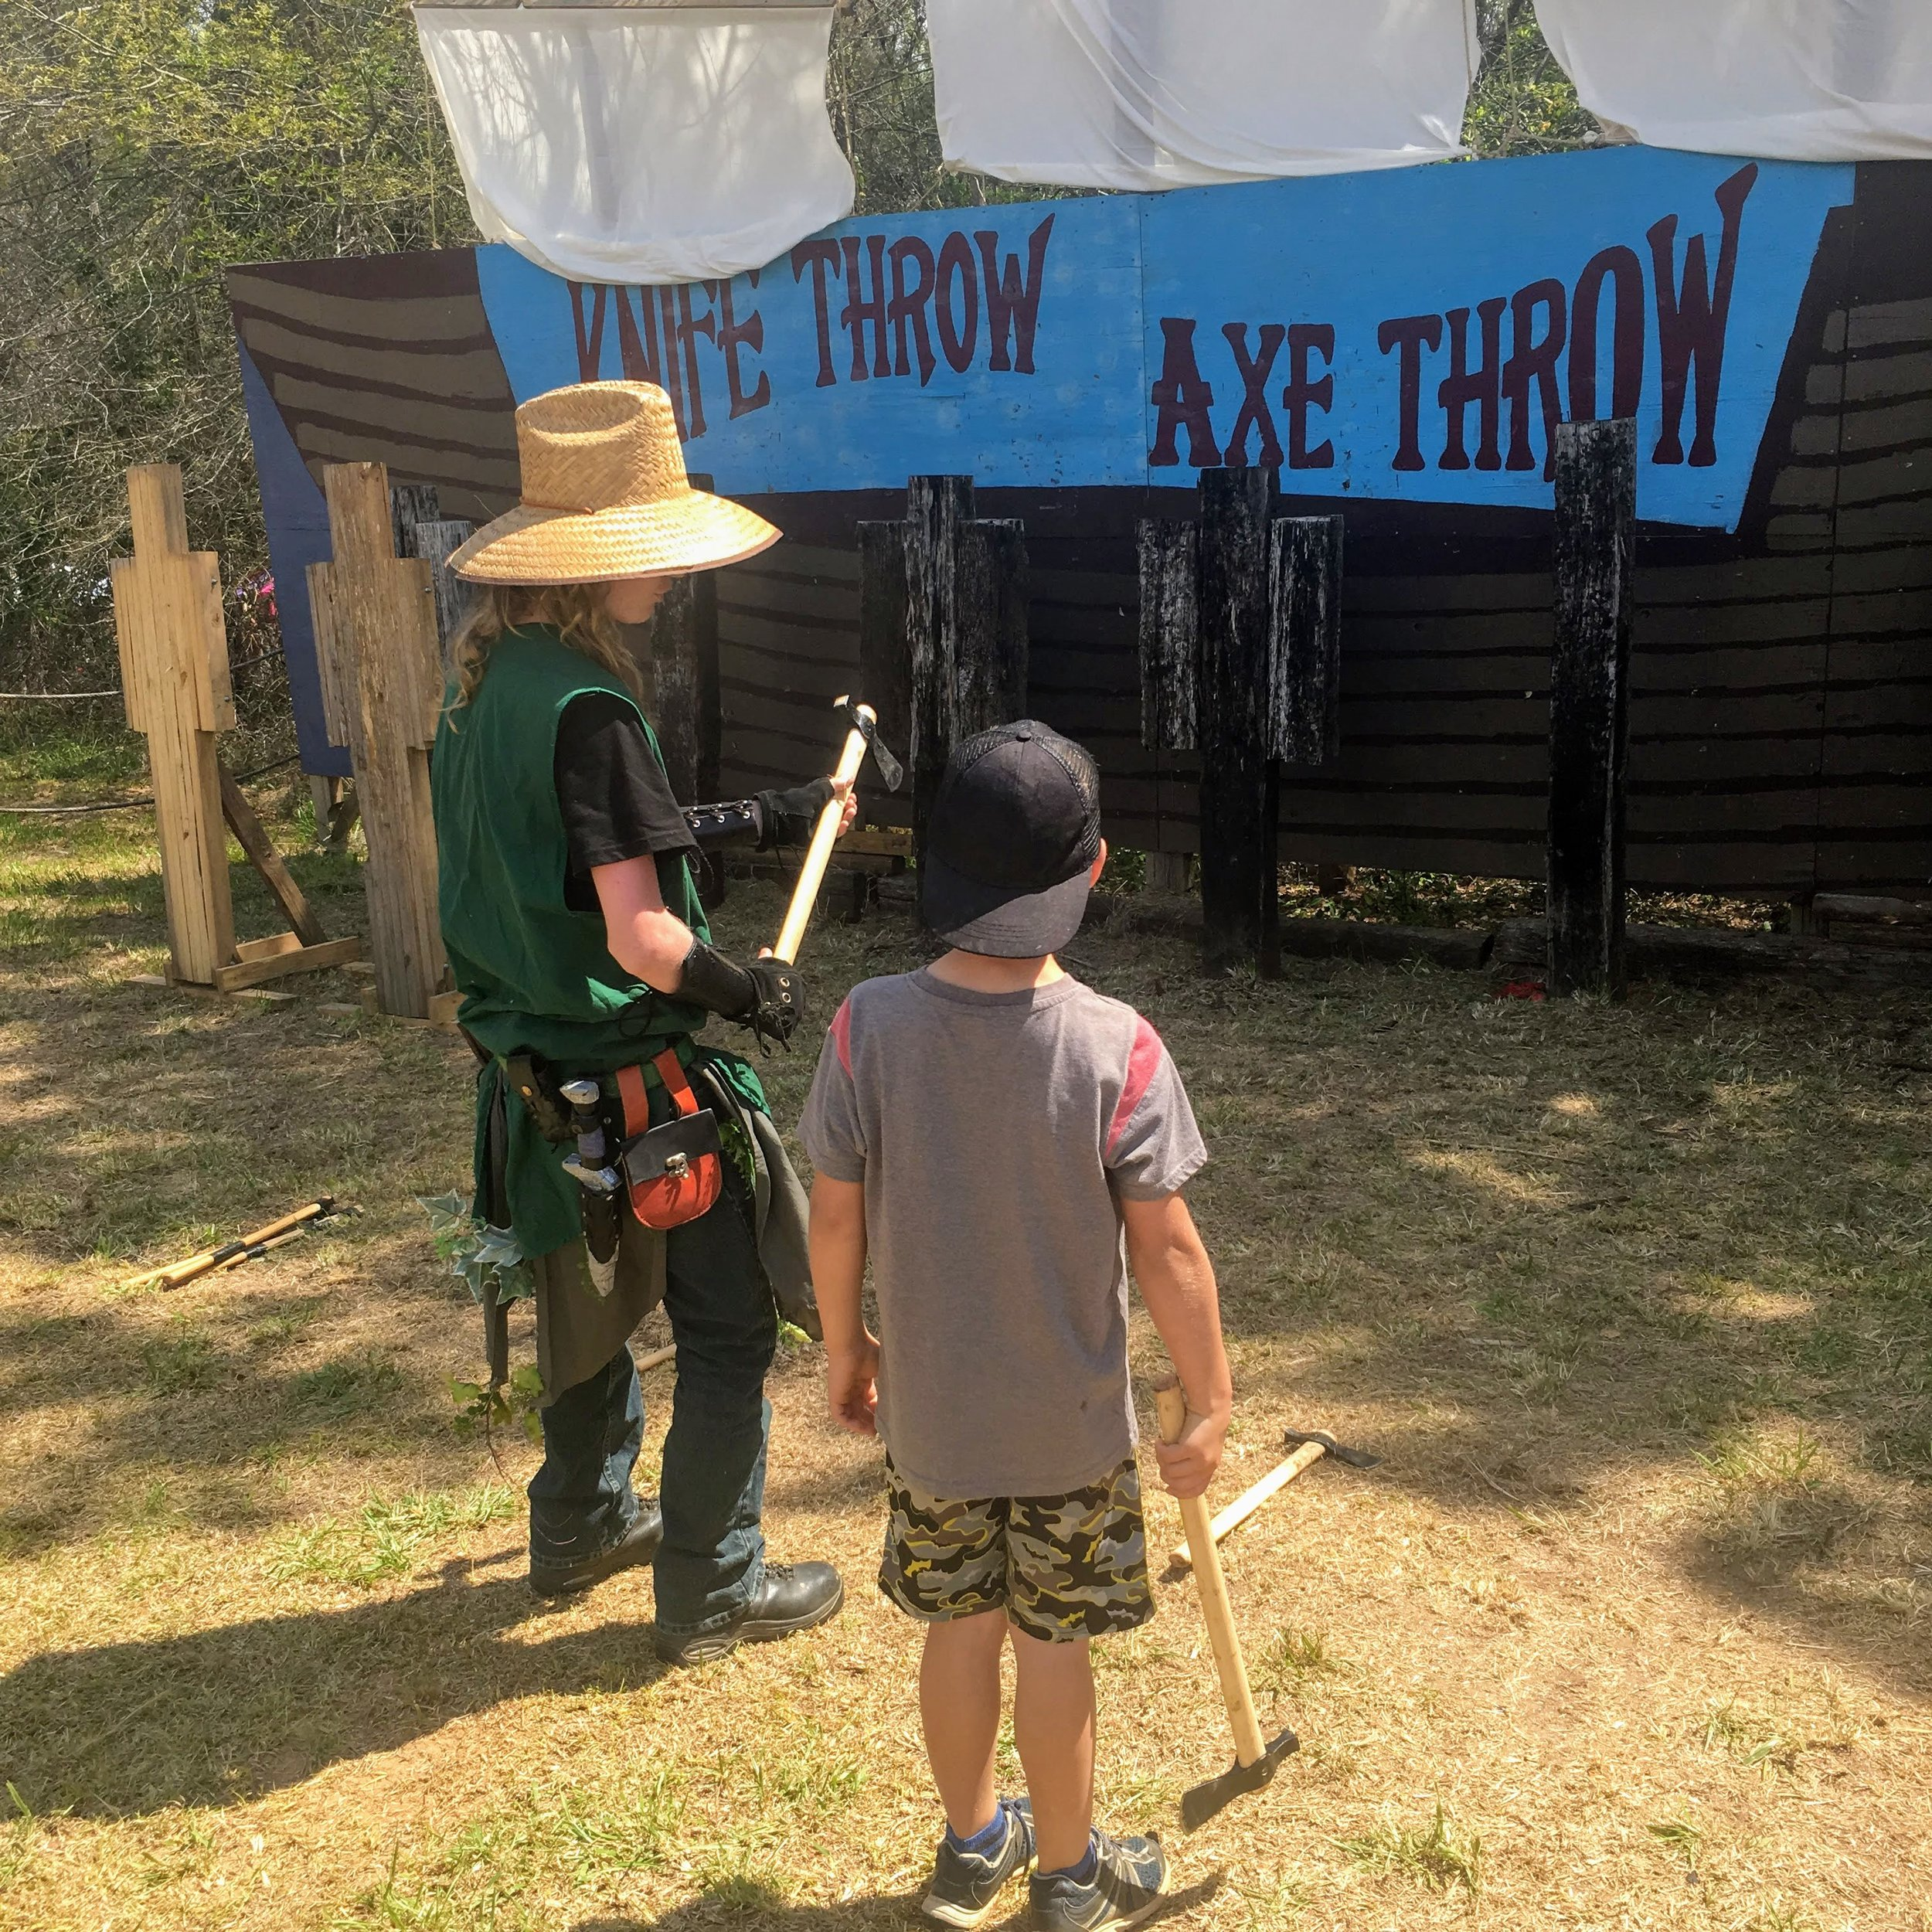 Knife and axe throwing at the Alabama Medieval Fantasy Festival. Photo by Sharron Swain